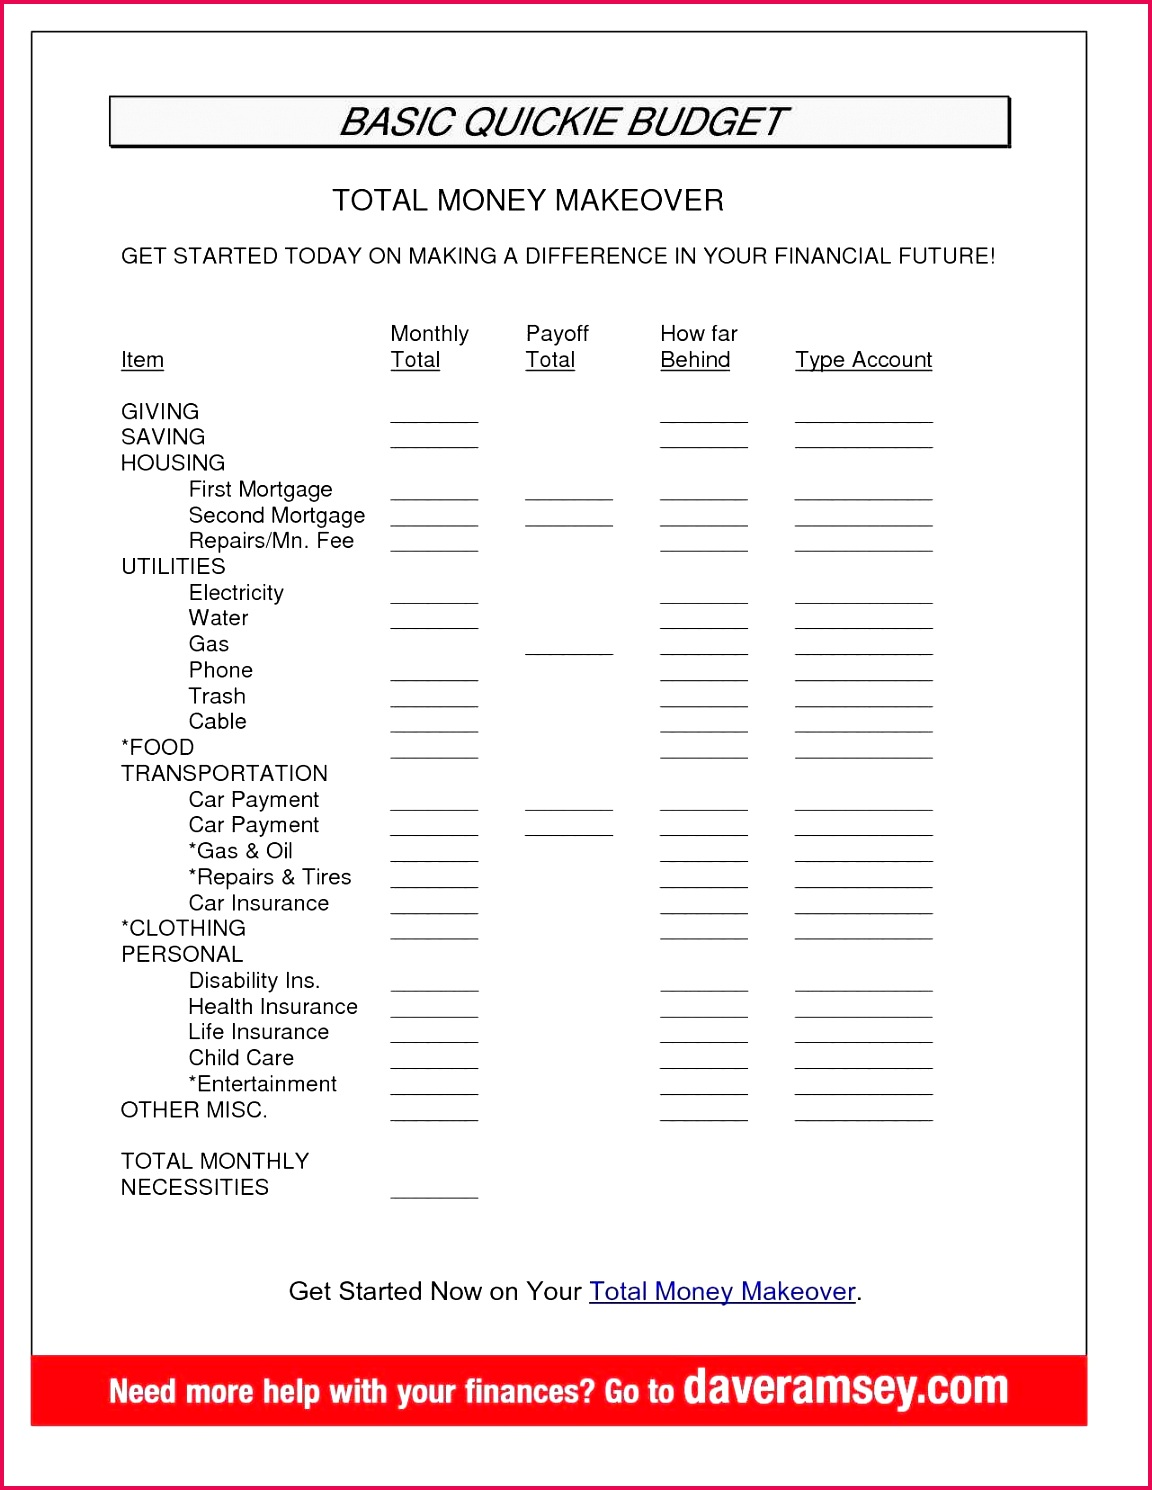 Bill Payment Spreadsheet Excel Templates Awesome Demand forecasting Excel Template and Car Loan Calculator Excel